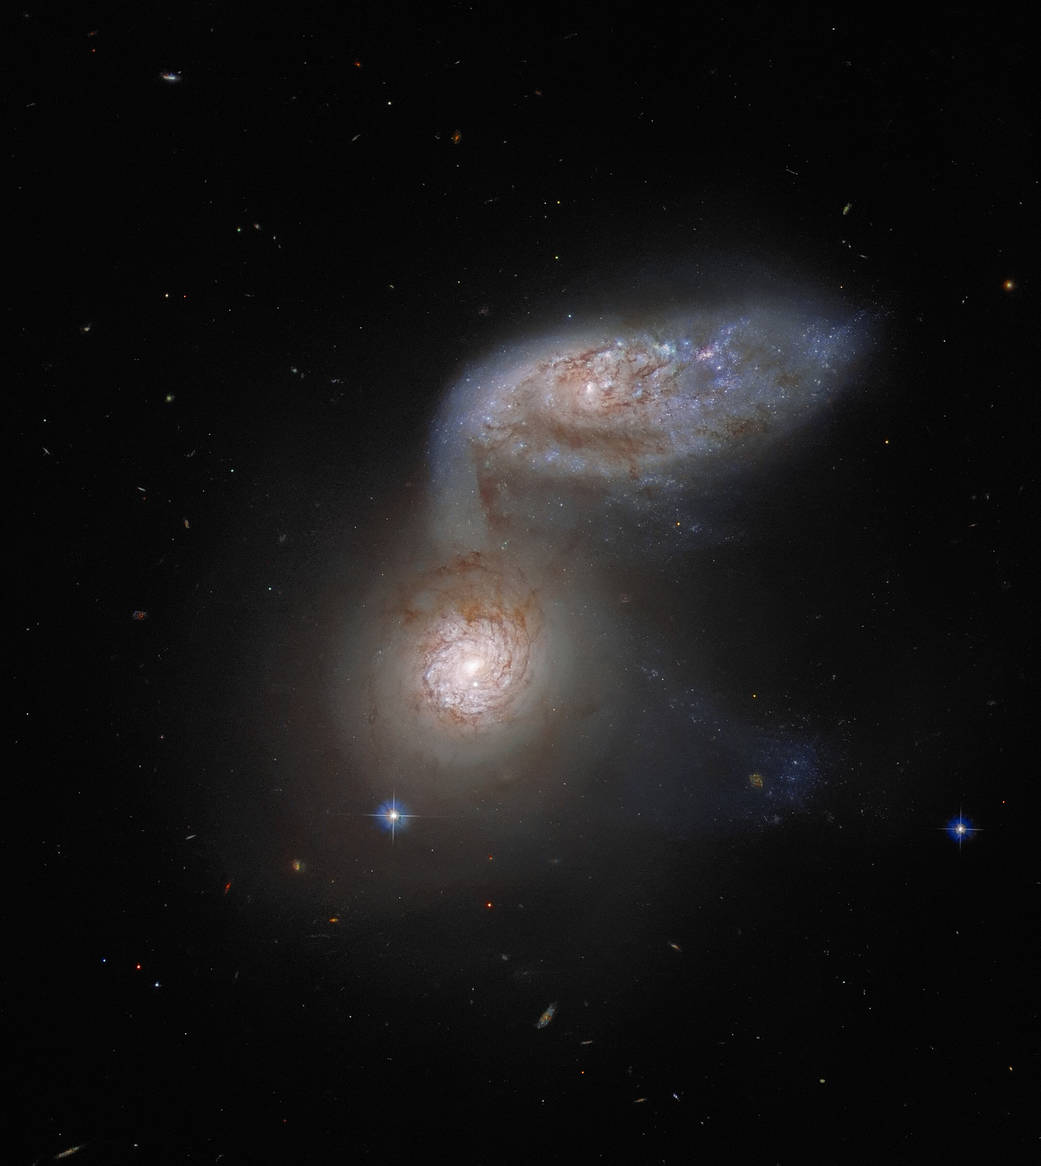 This NASA/ESA Hubble Space Telescope image features two interacting galaxies that are so intertwined, they have a collective name – Arp 91. Their delicate galactic dance takes place more than 100 million light-years from Earth.